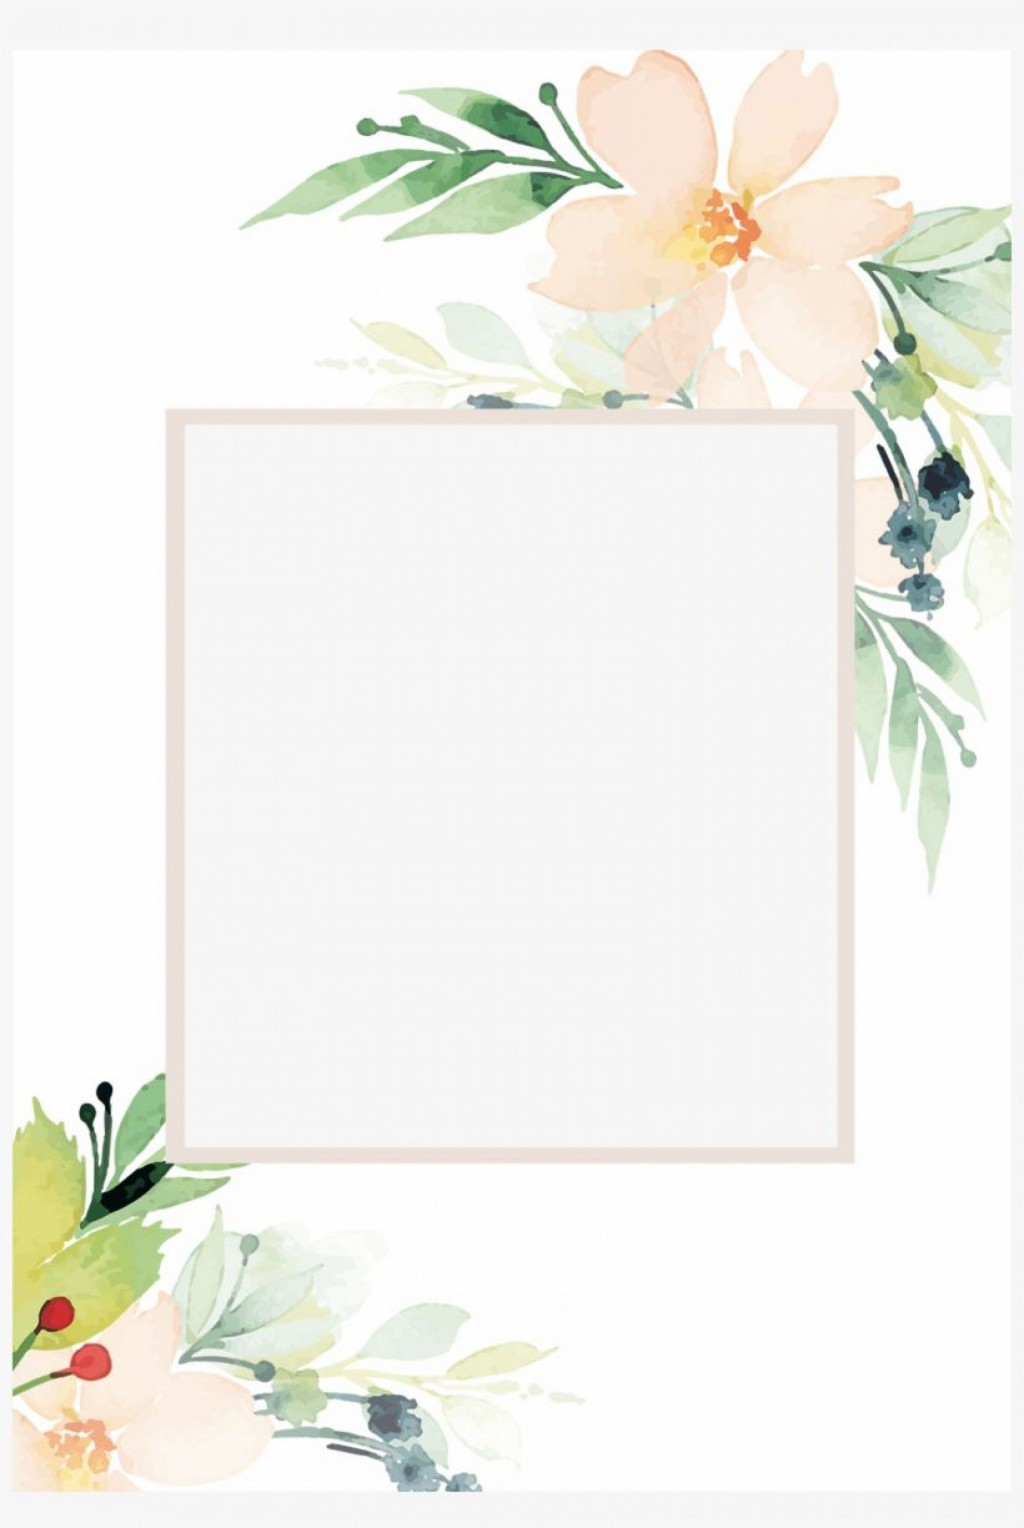 000 Unbelievable Free Printable Photo Card Template Concept  Templates Birthday Thank YouLarge